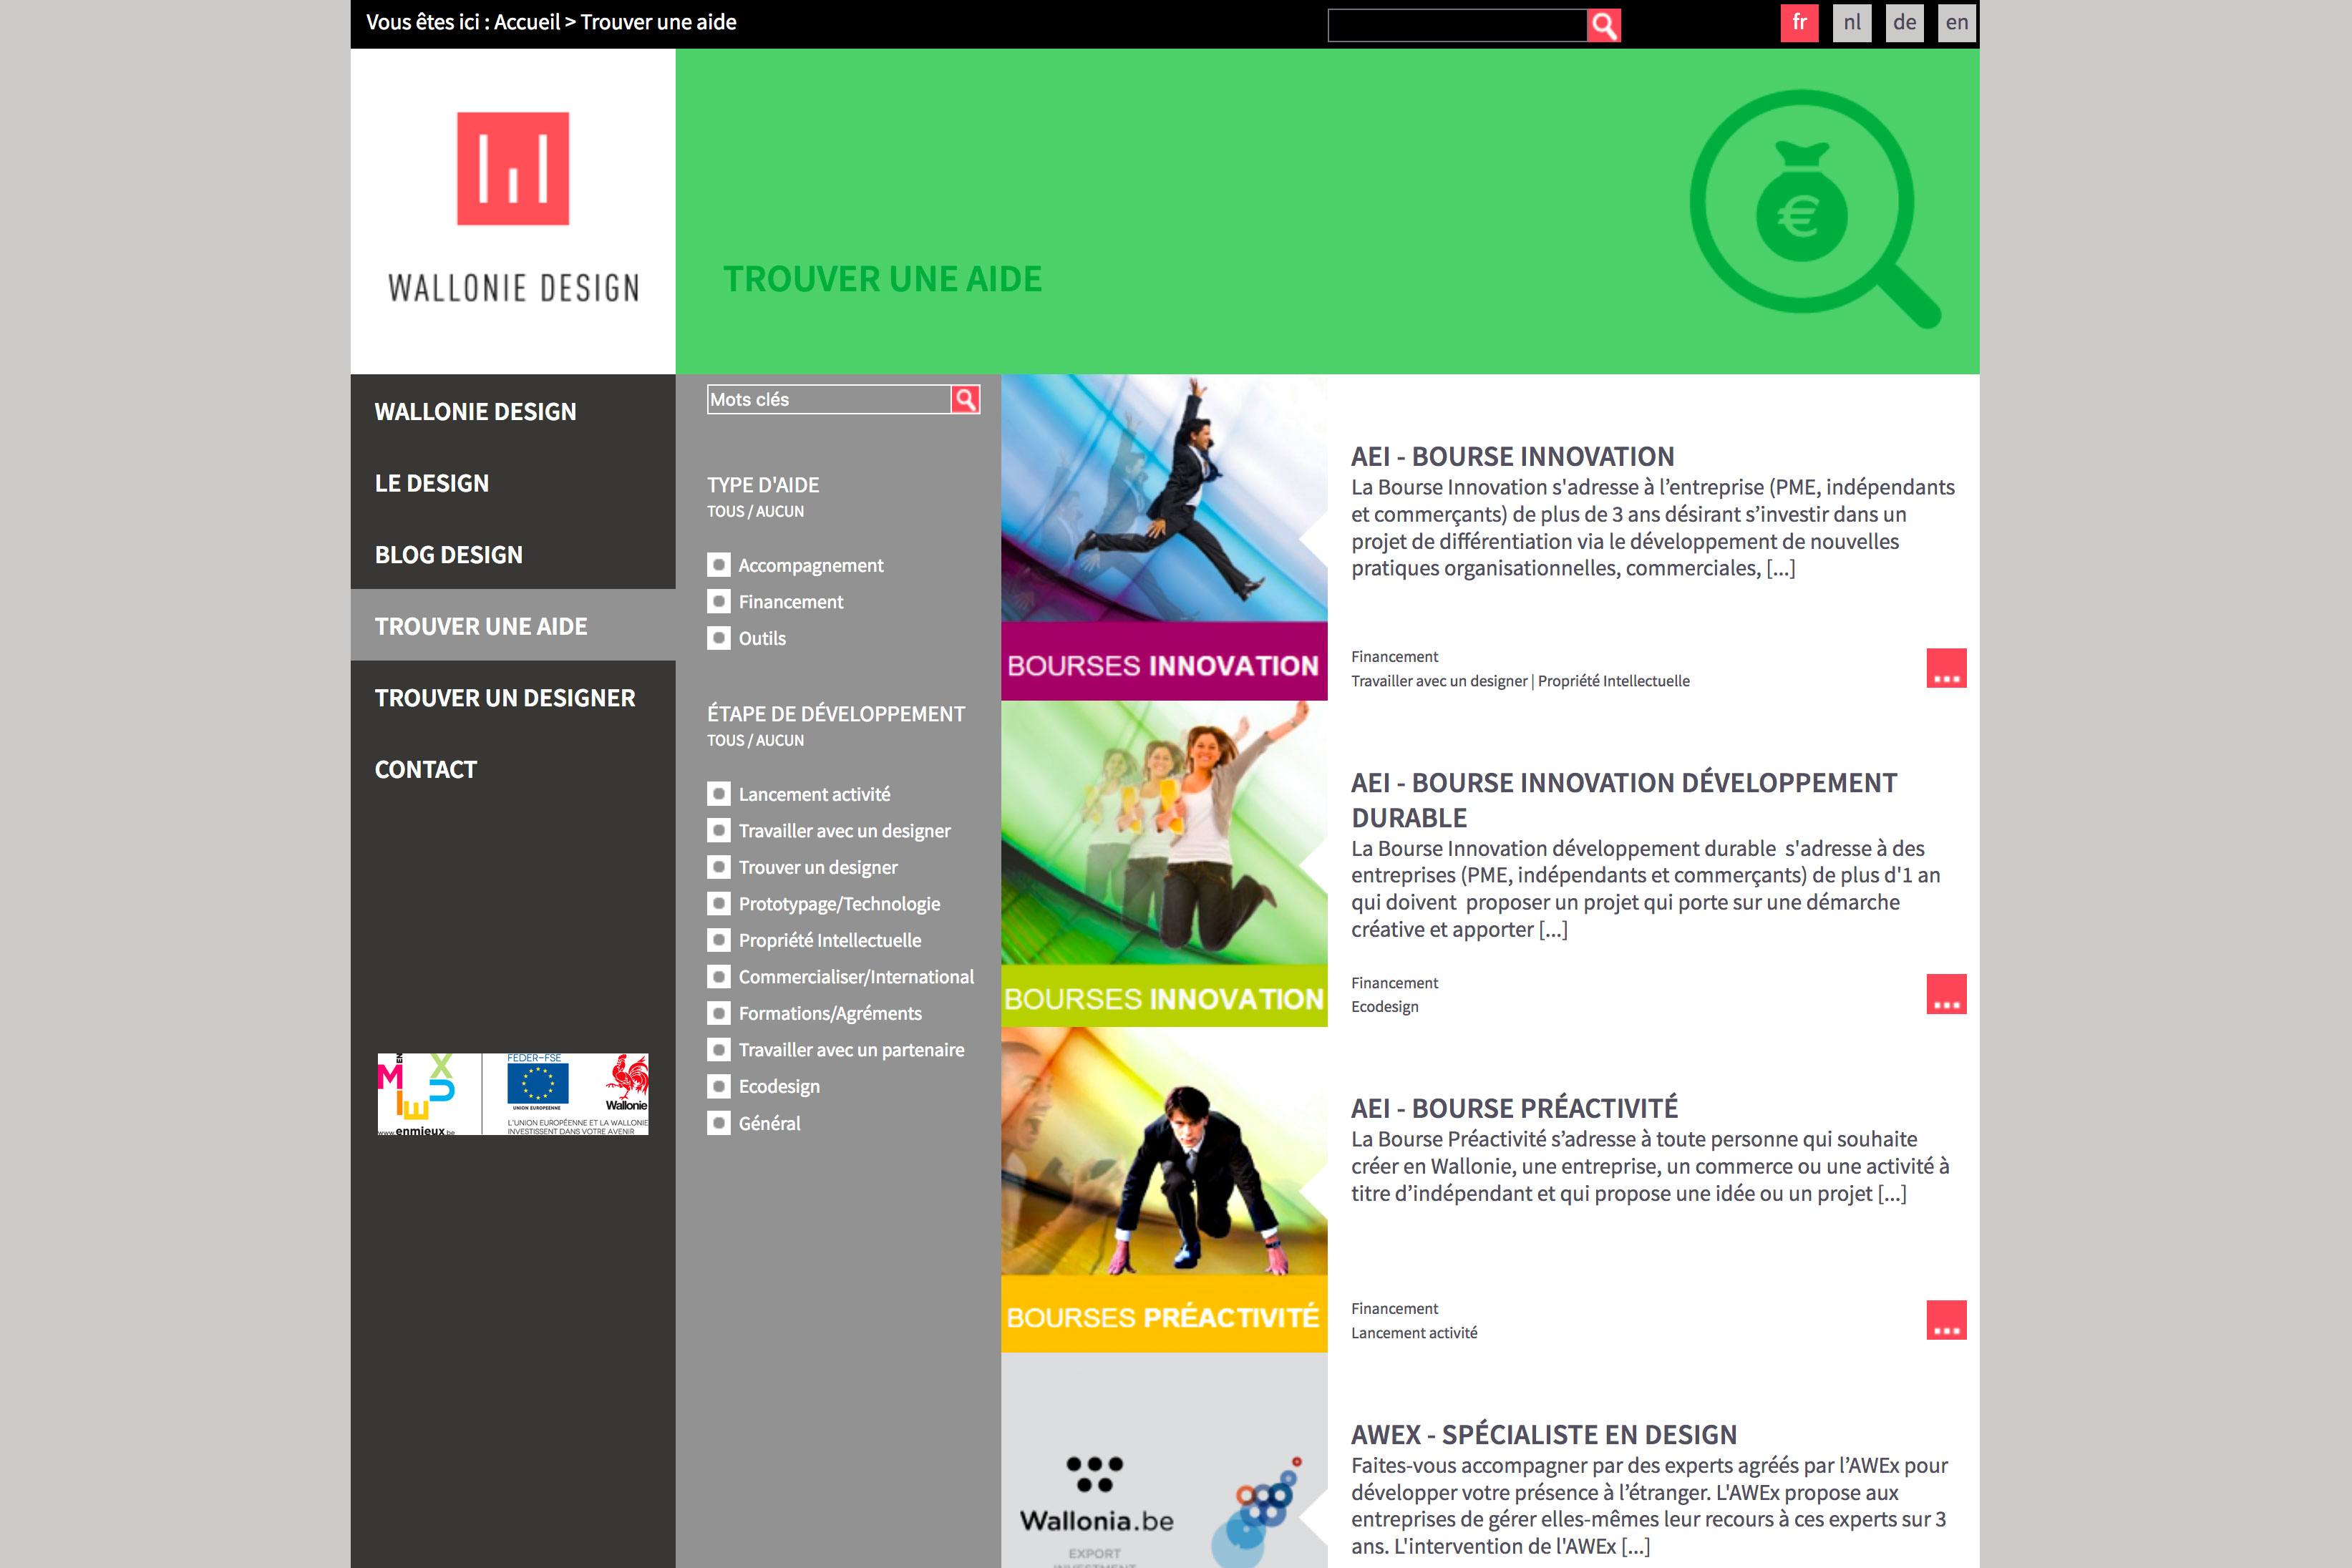 4_crabgraphic_site_web_Wallonie_Design